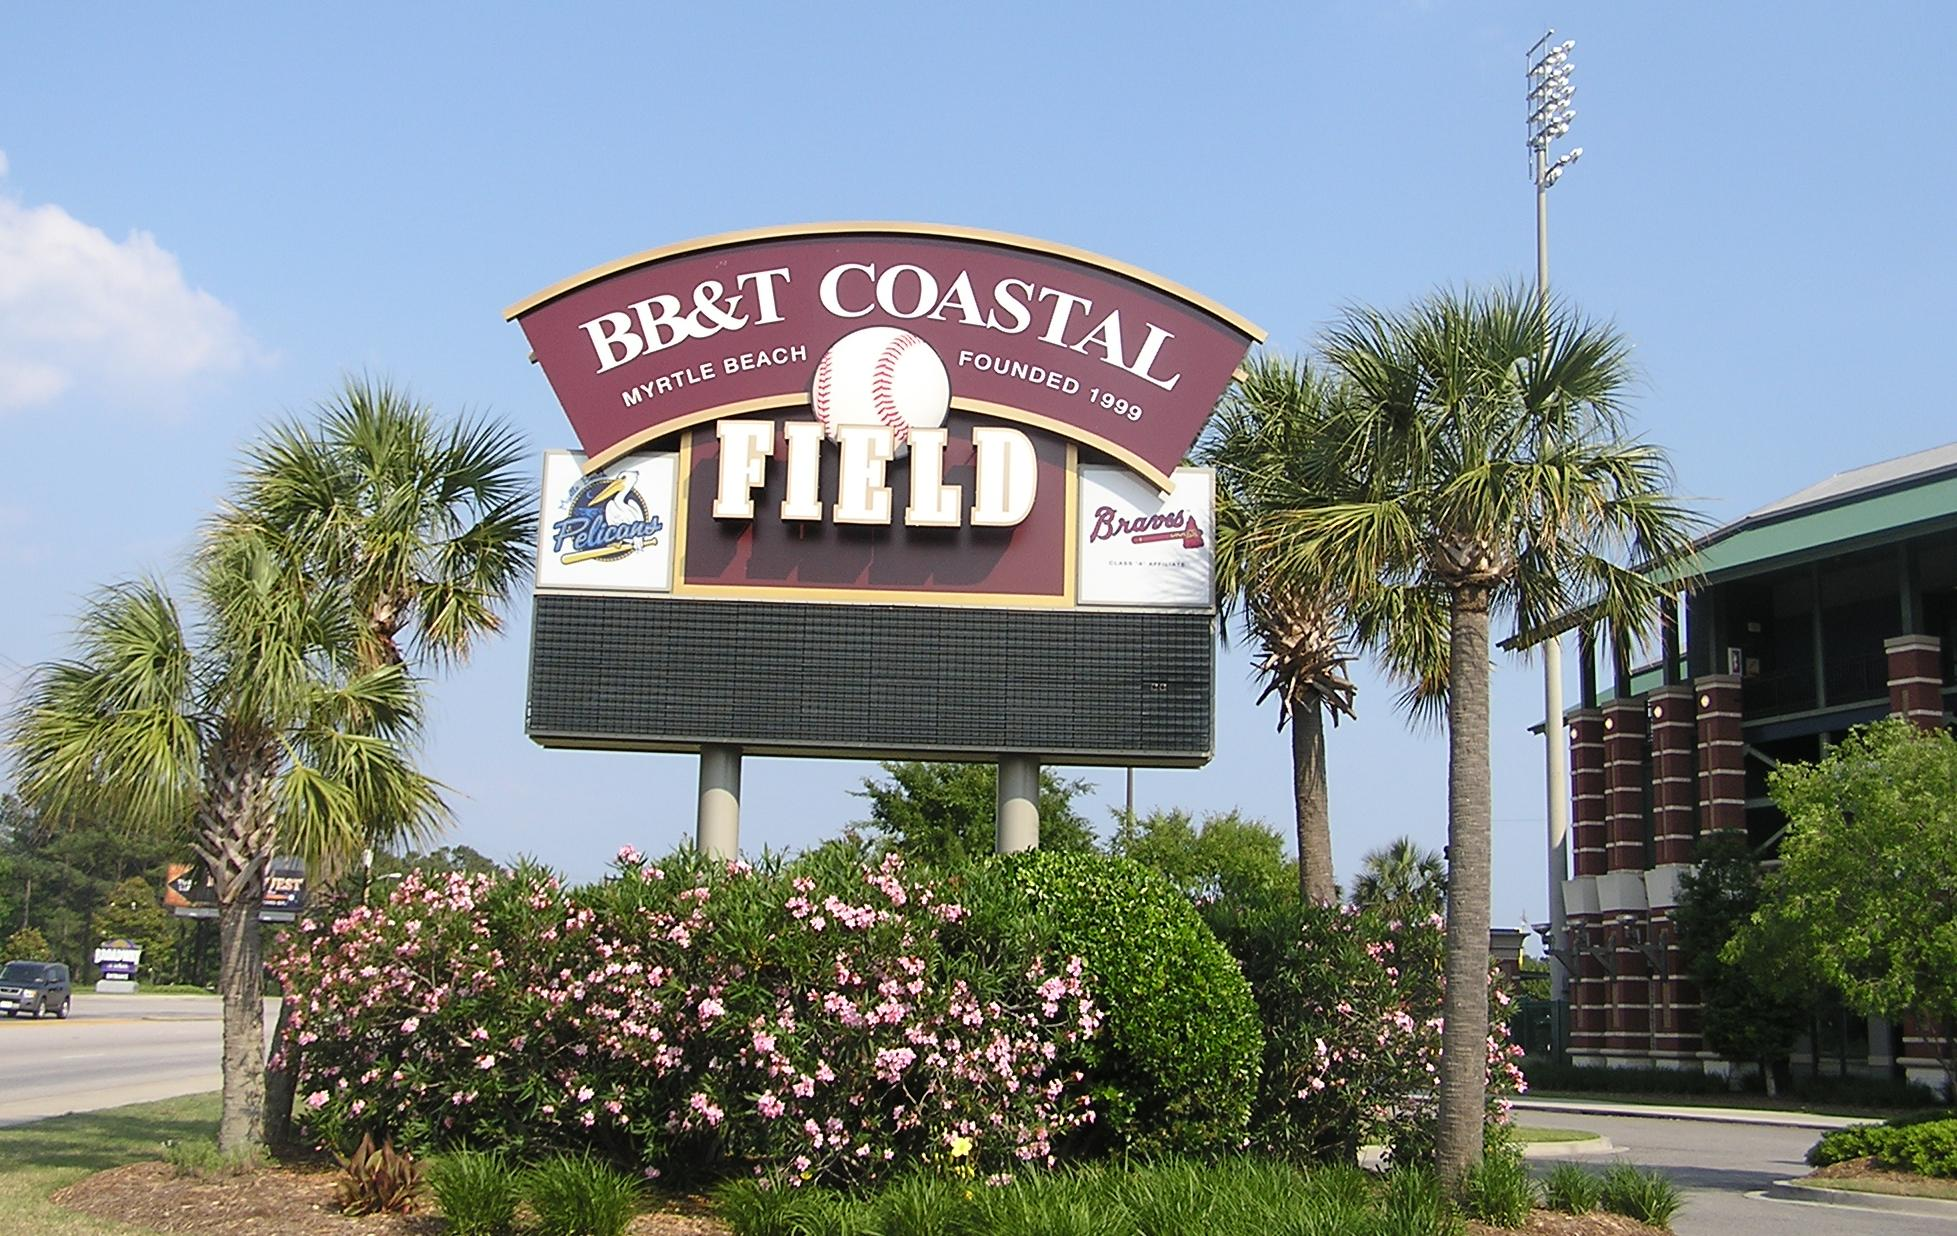 BB&T Coastal Field, Myrtle Beach, SC